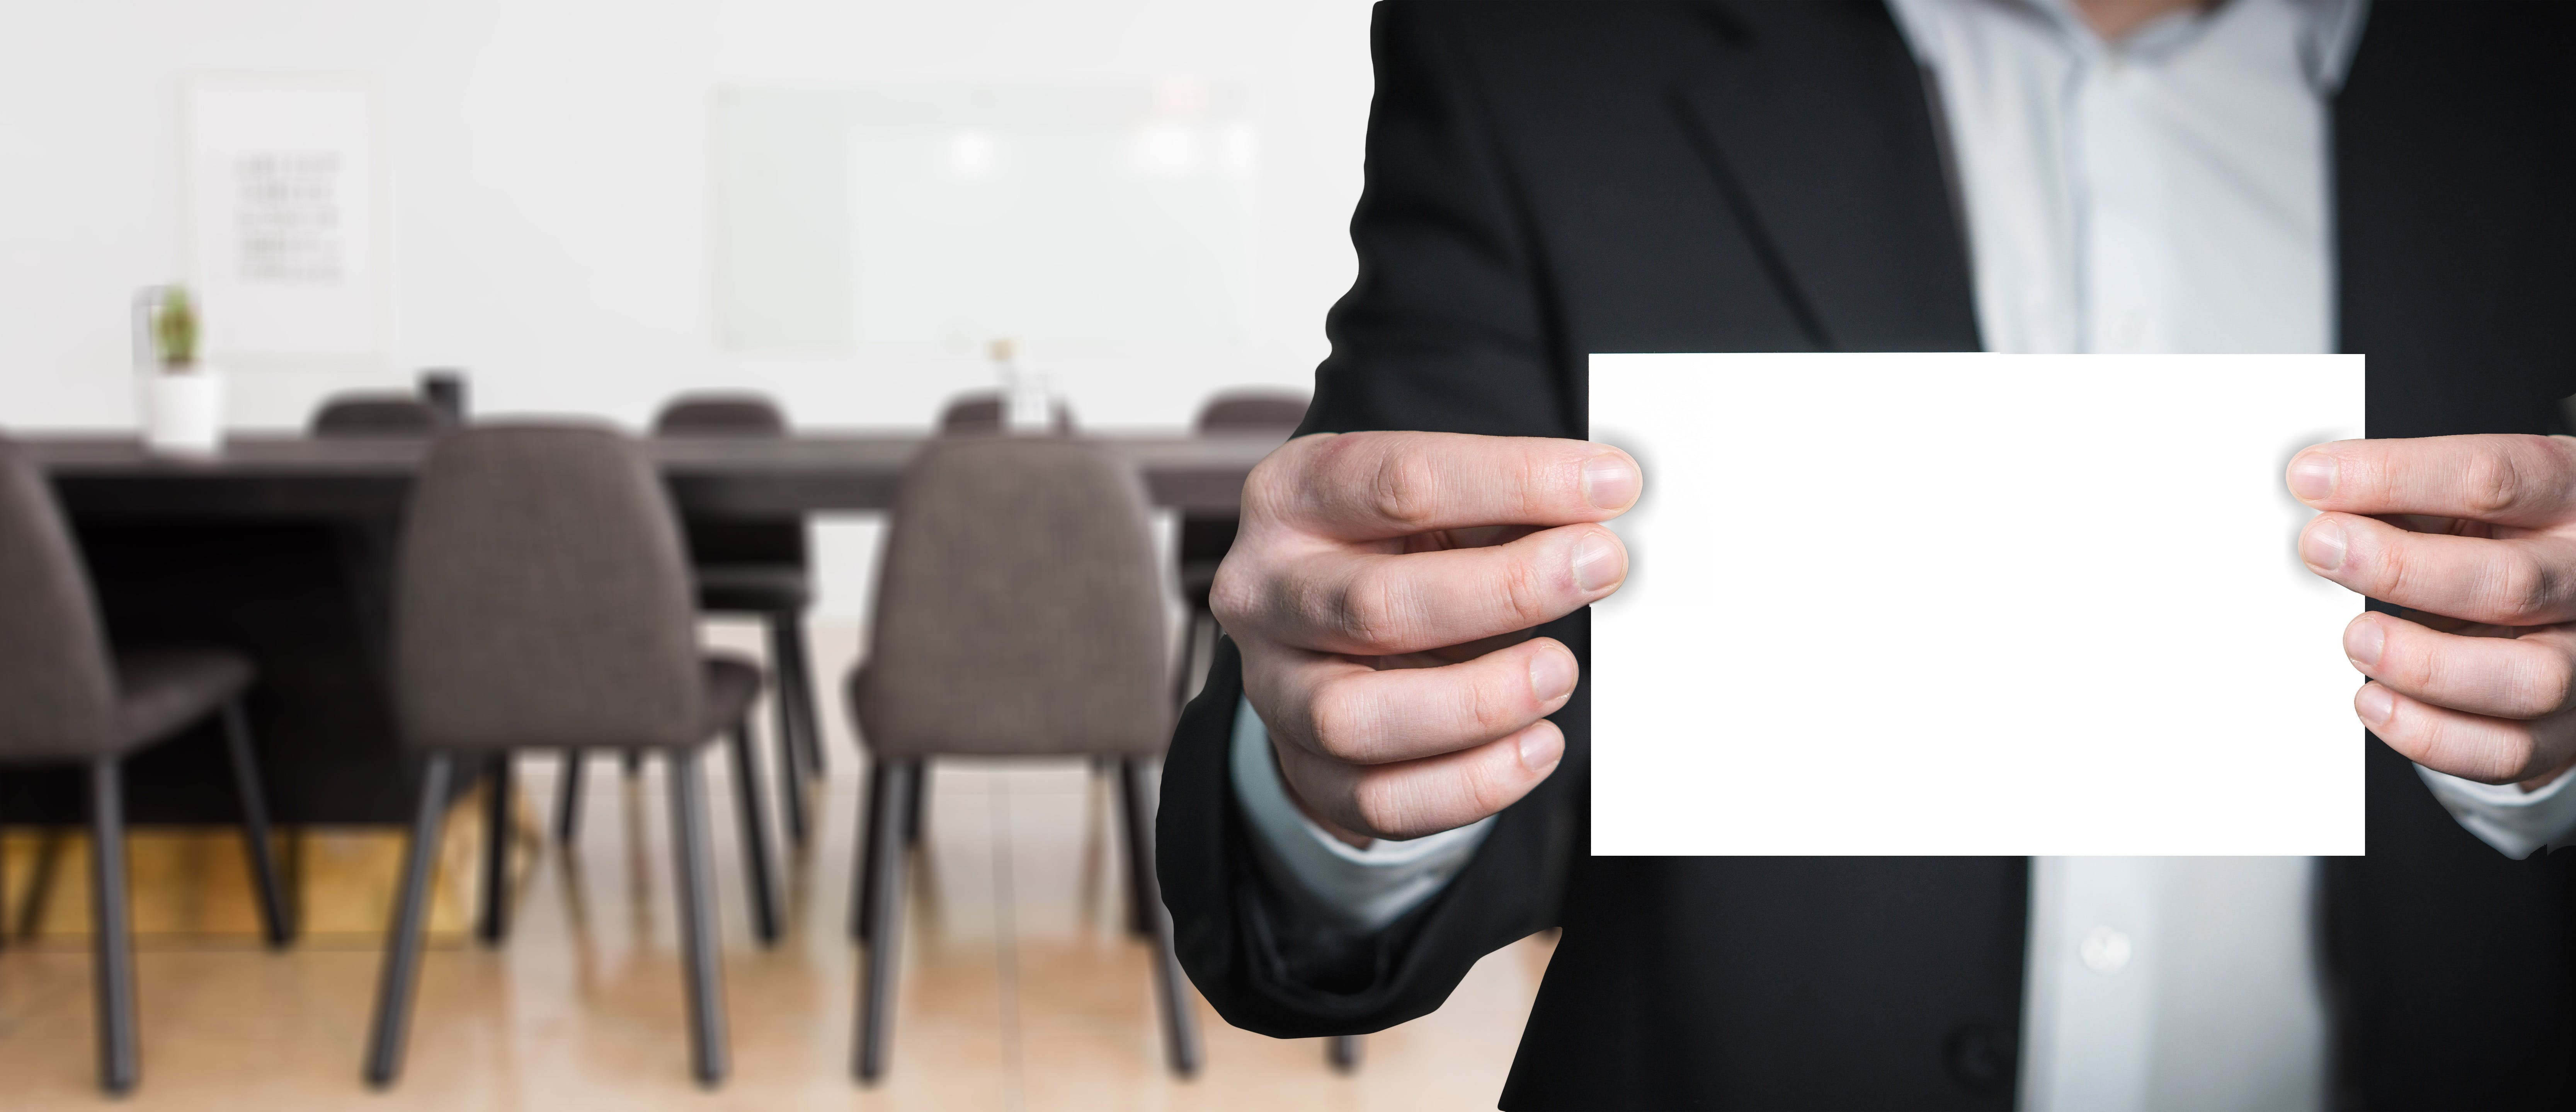 chairs, executive, fingers